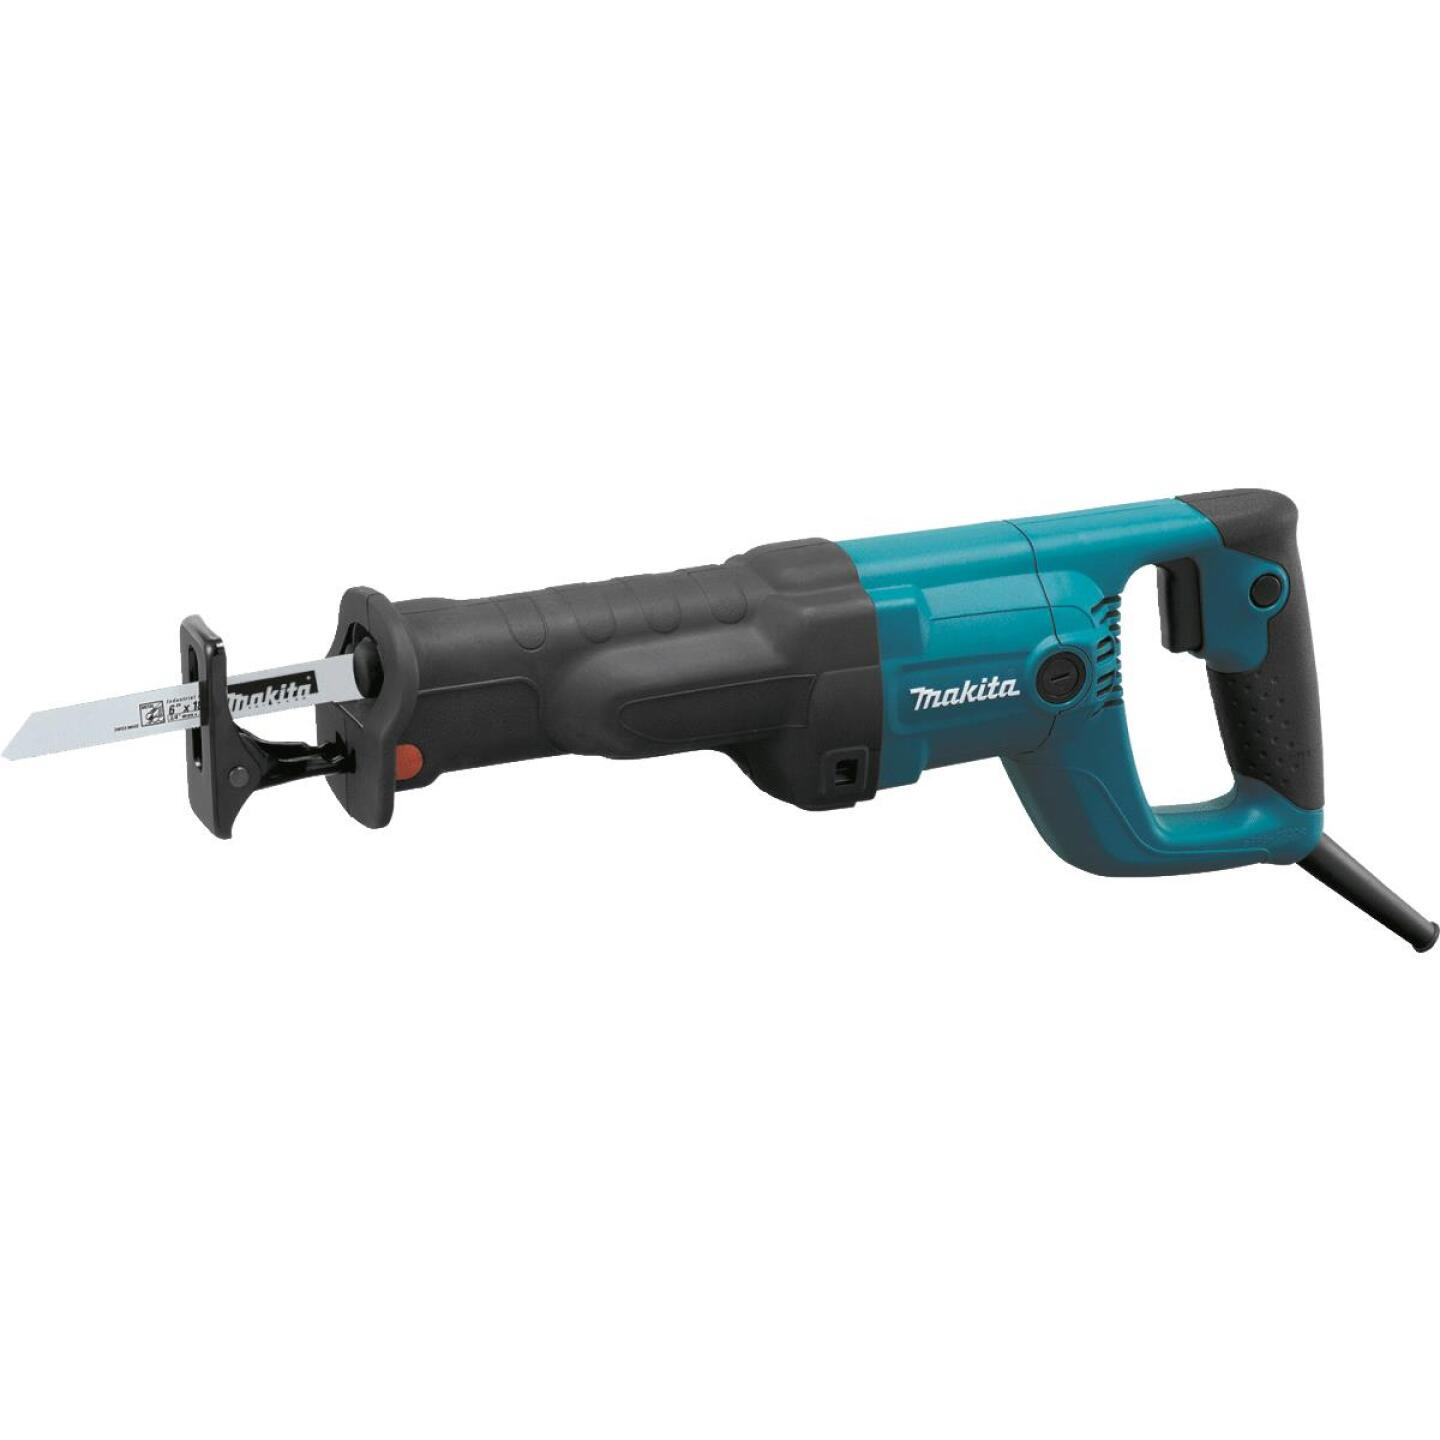 Makita 12-Amp Reciprocating Saw Image 8